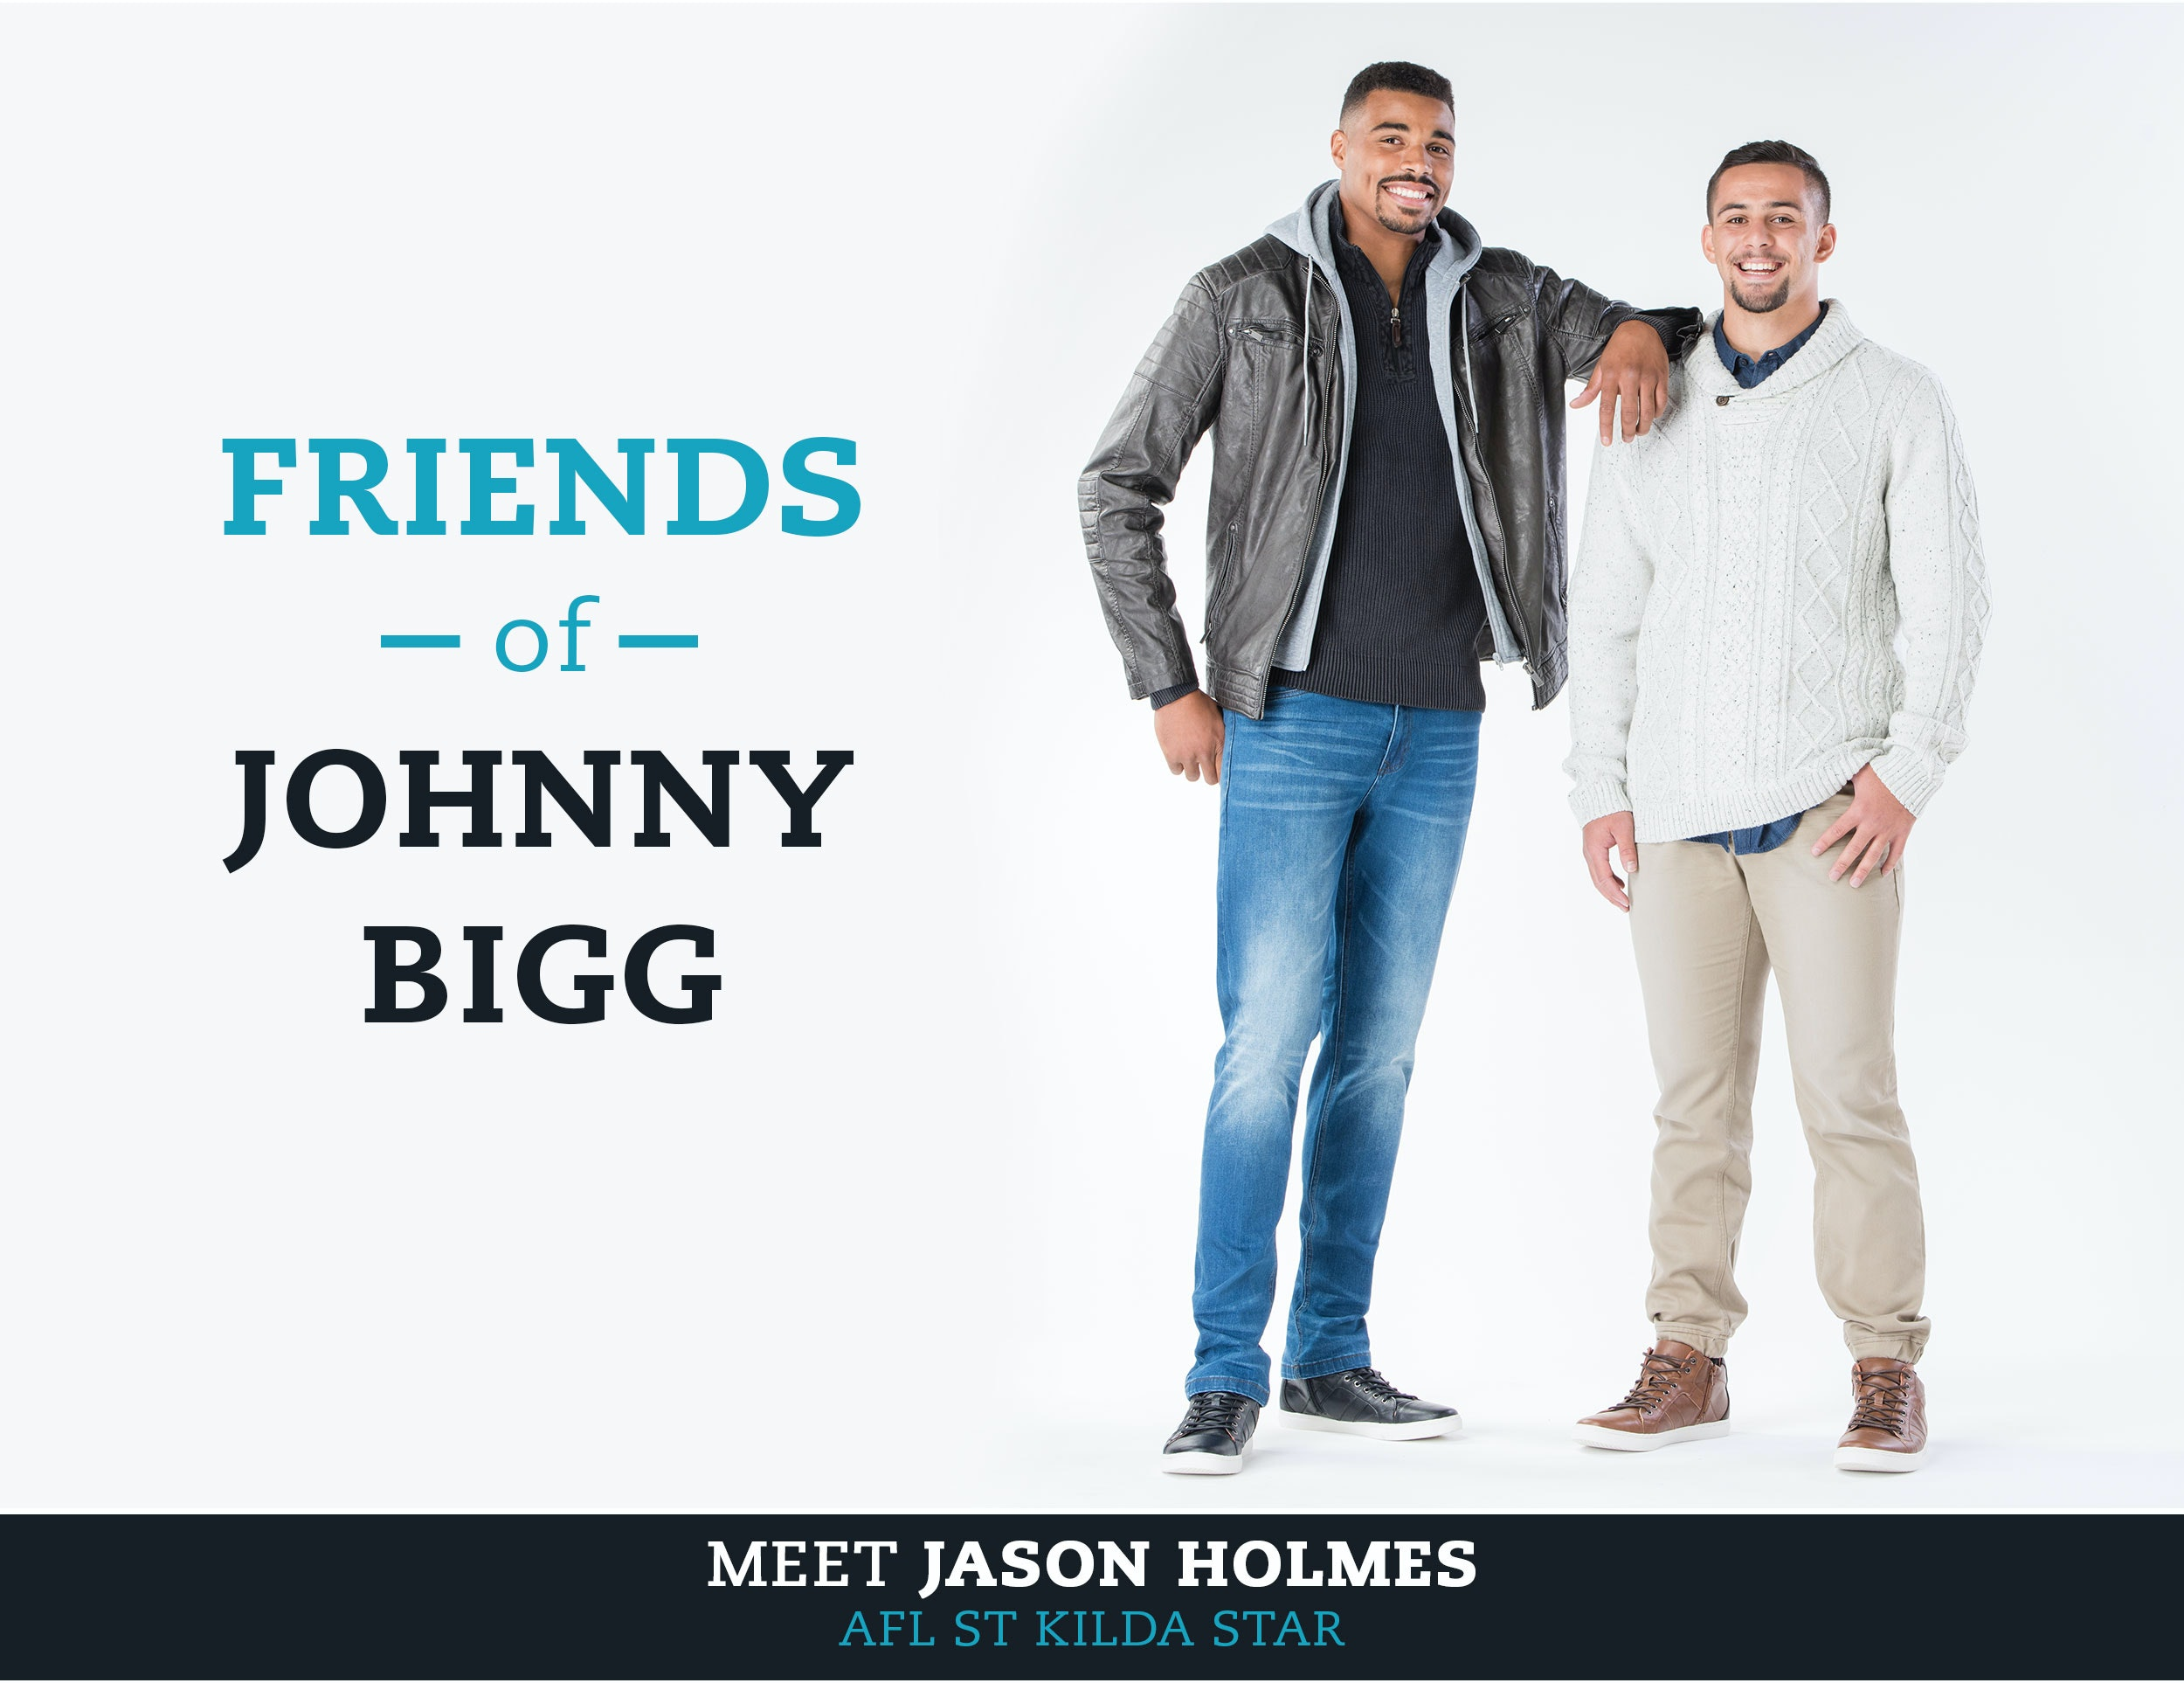 Friends of Johnny Bigg